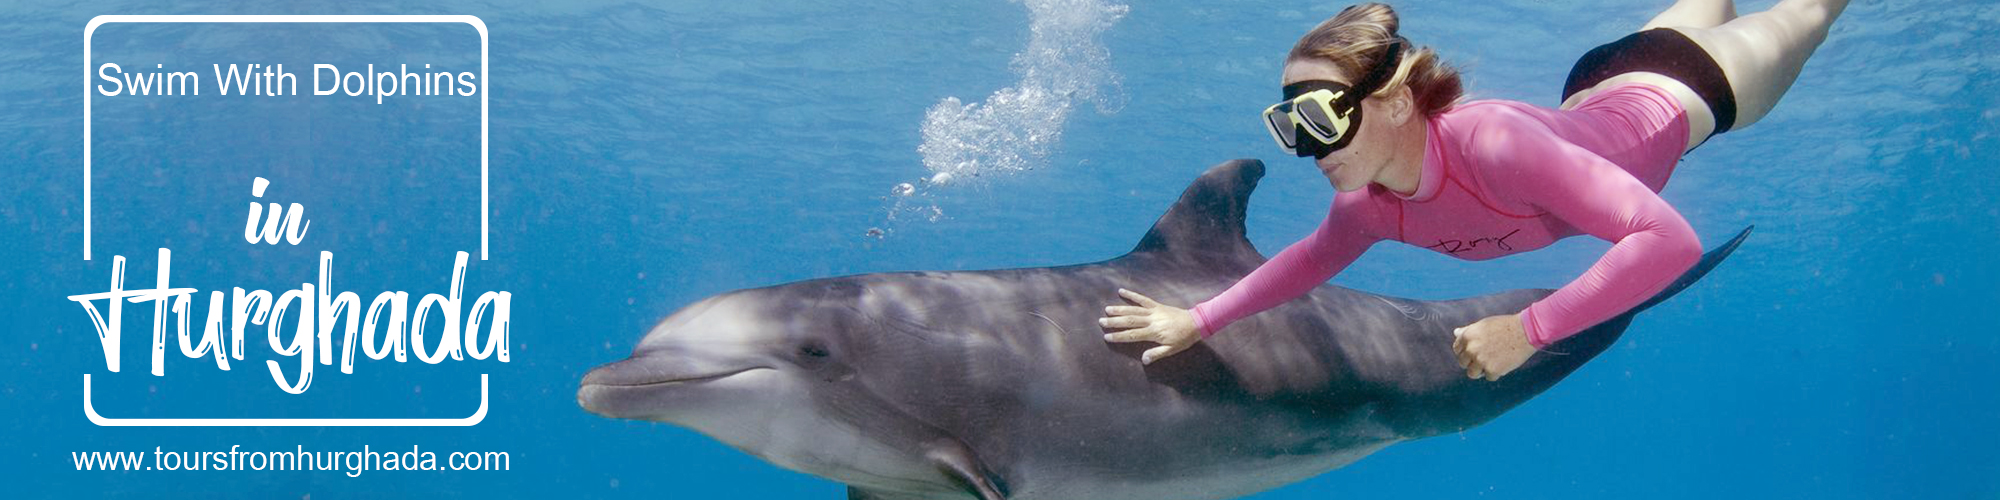 Swim With Dolphins Hurghada Tours - Tours From Hurghada